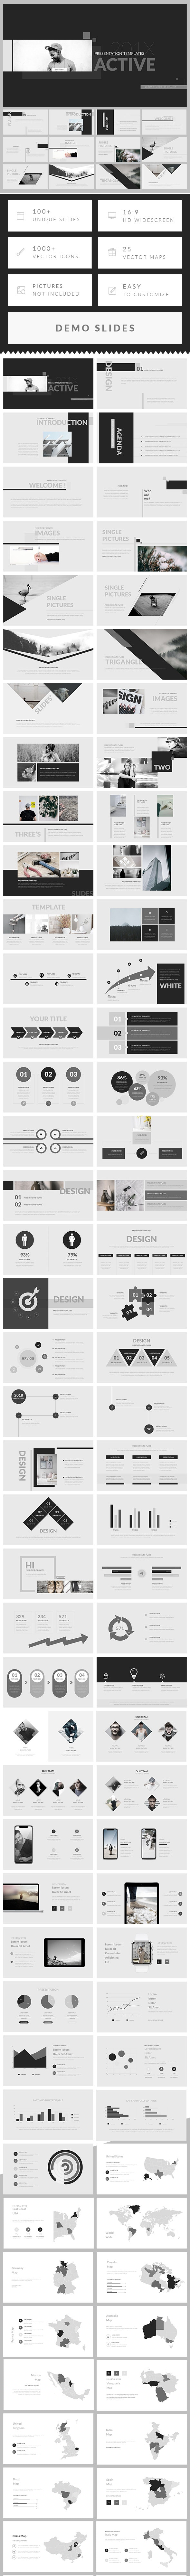 Active - Keynote Presentation Template - Business Keynote Templates